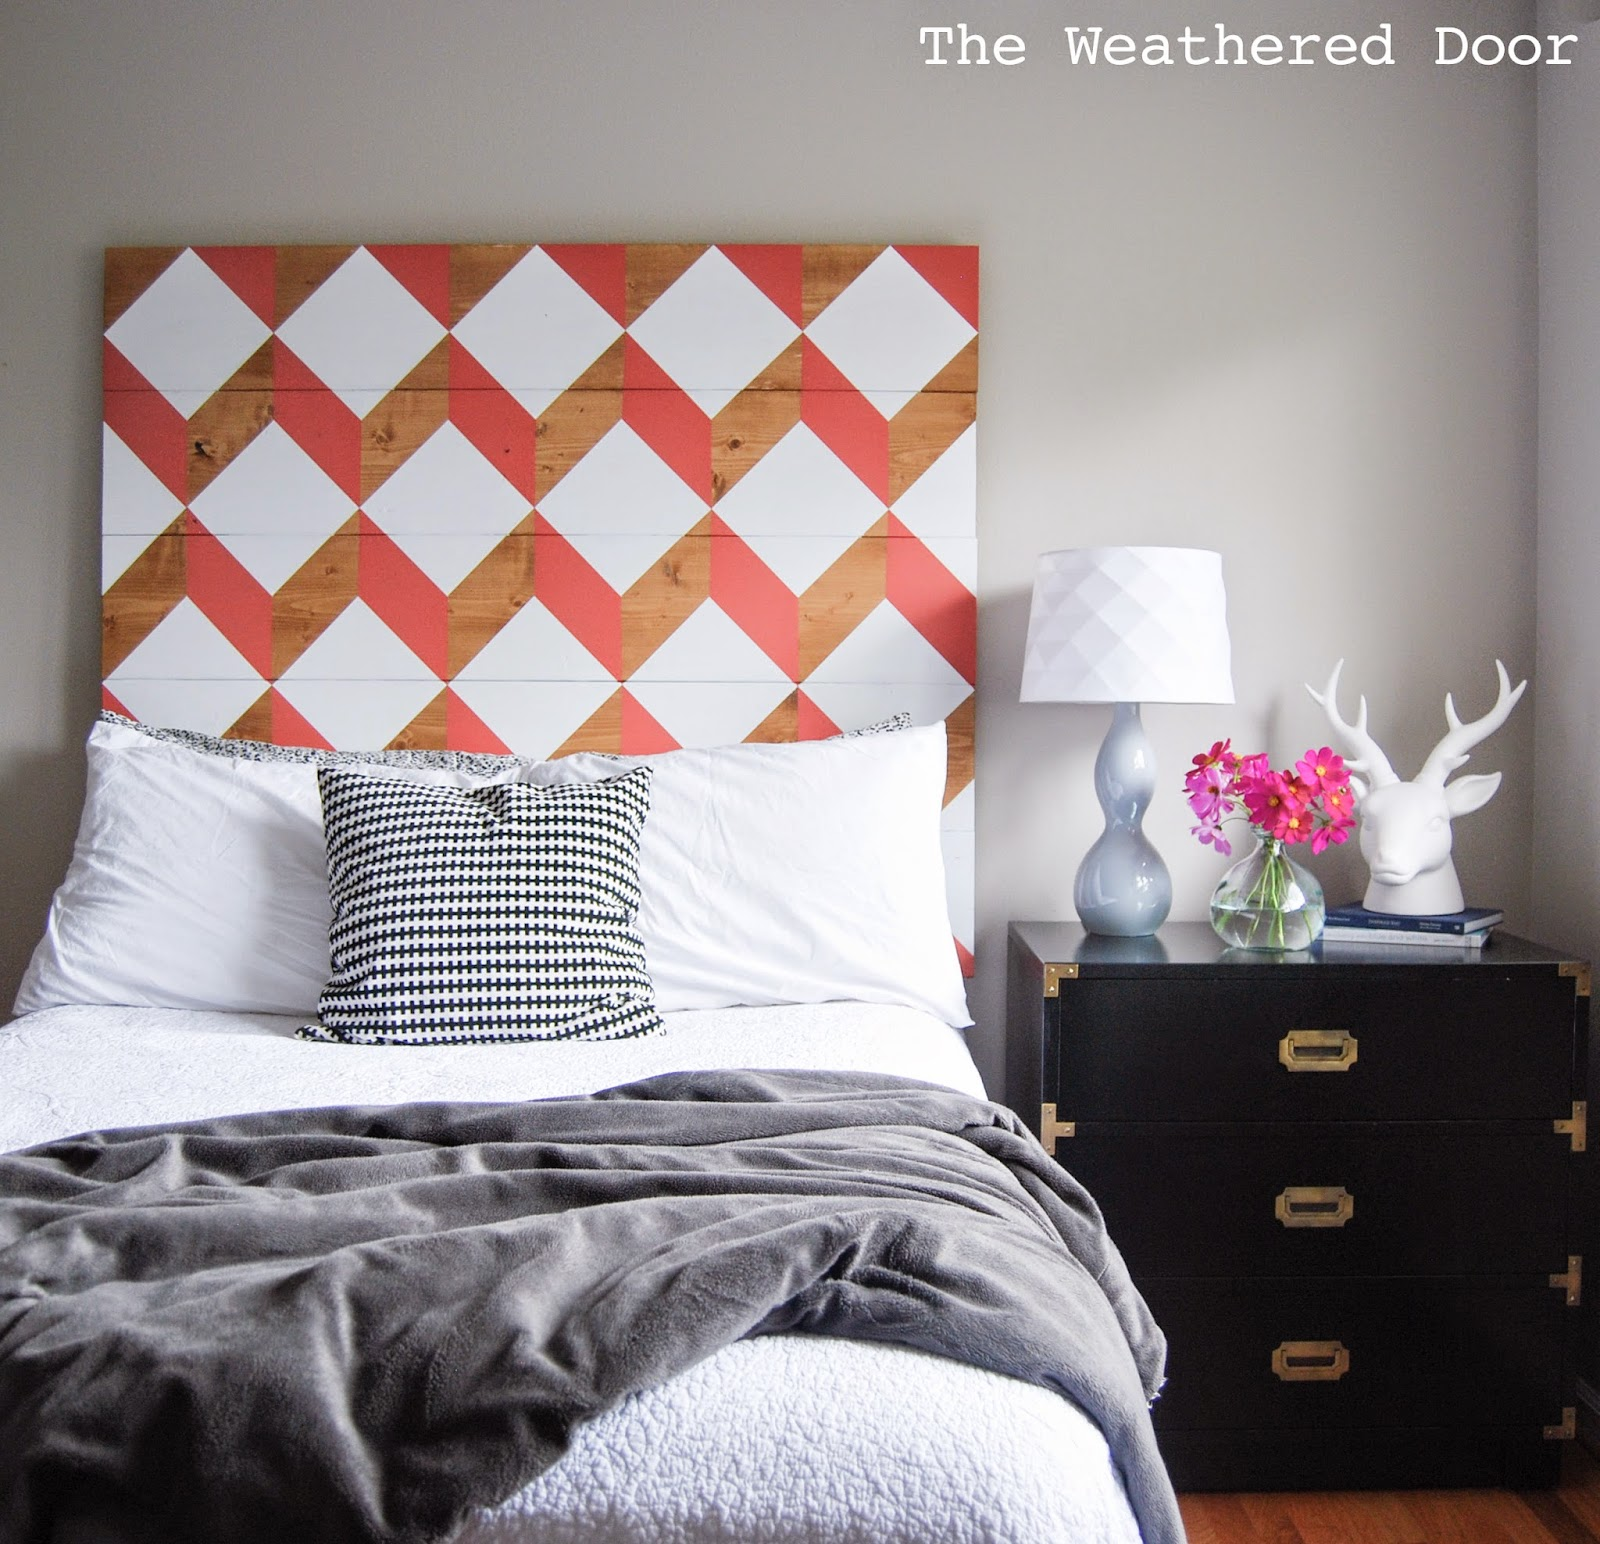 Diy Home Decor Indian Style Tutorial: Home Decor DIY Projects